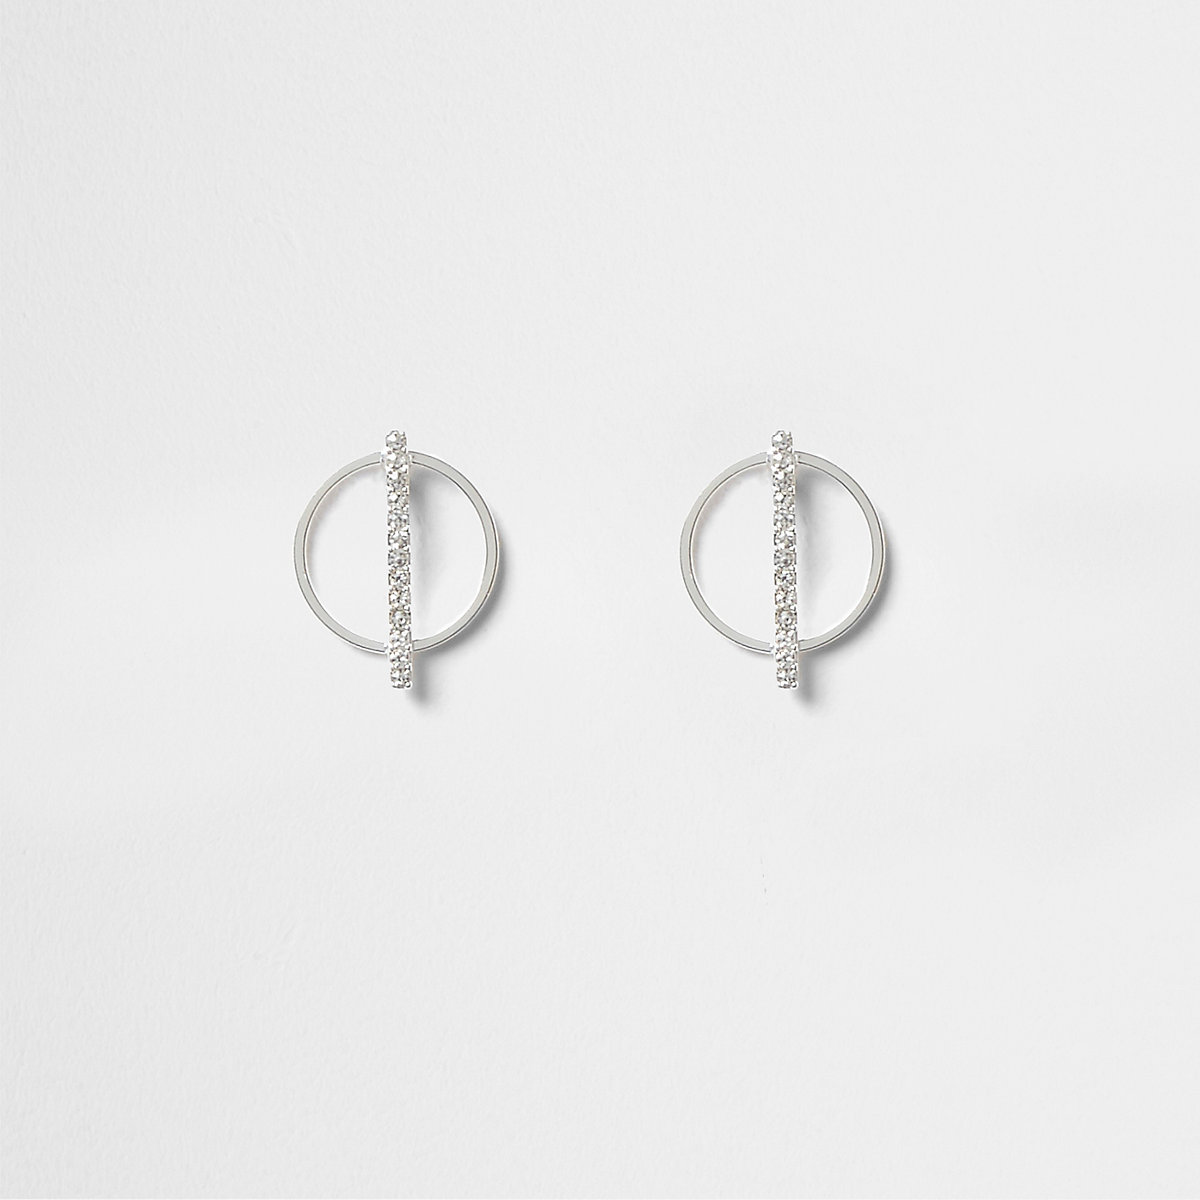 Silver tone pave circle stud earrings